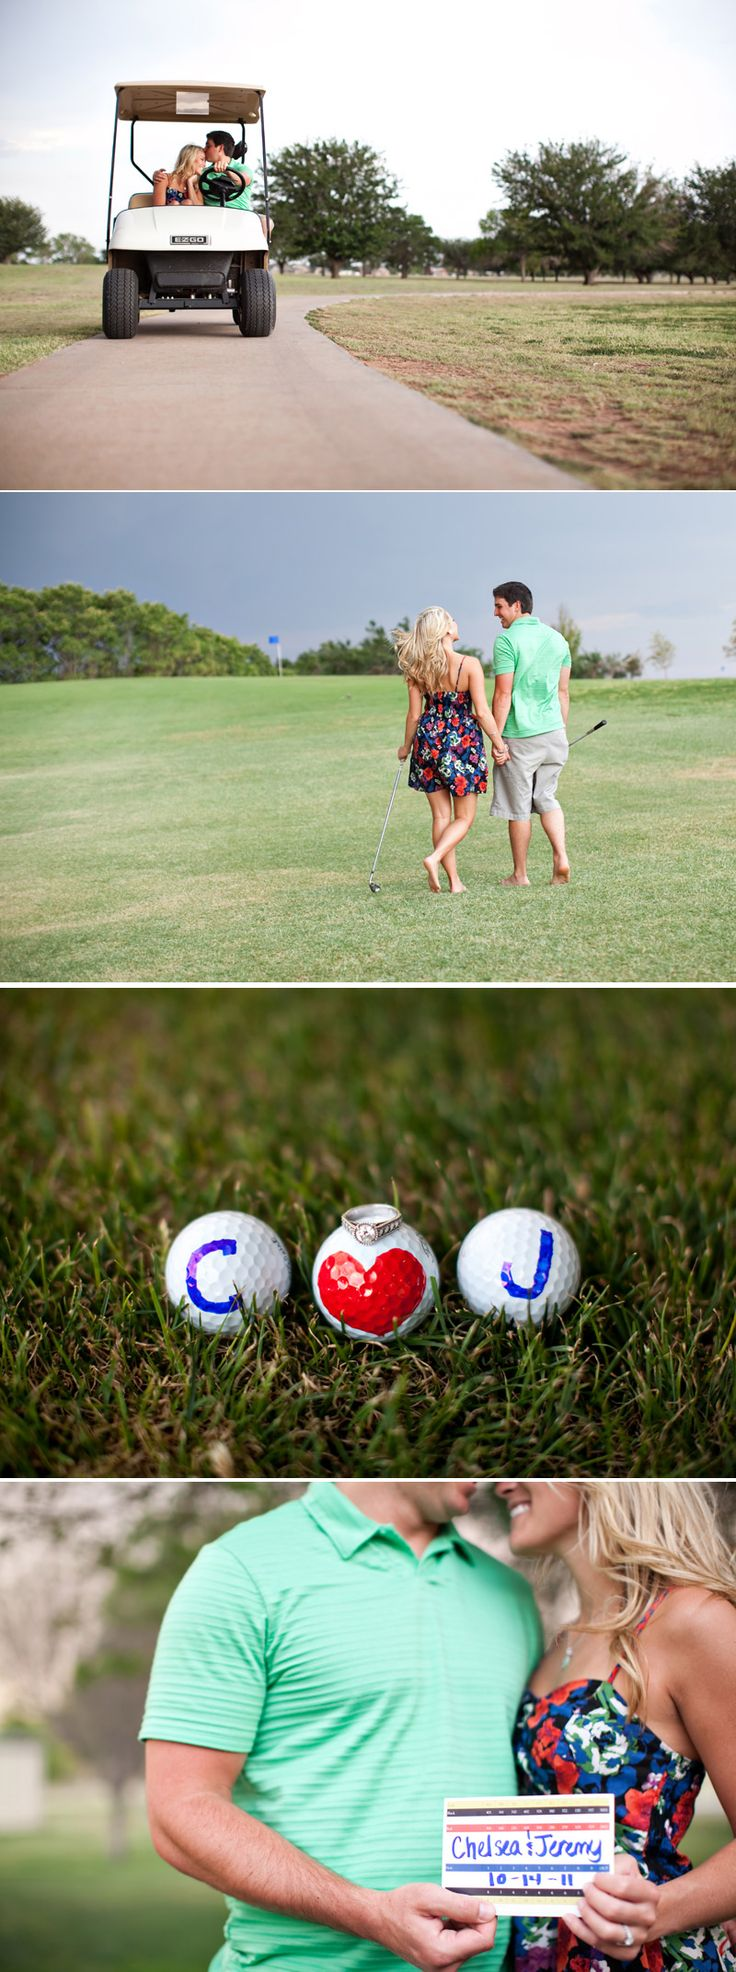 We should have done a few engagement pictures on the golf course since that is where he proposed!